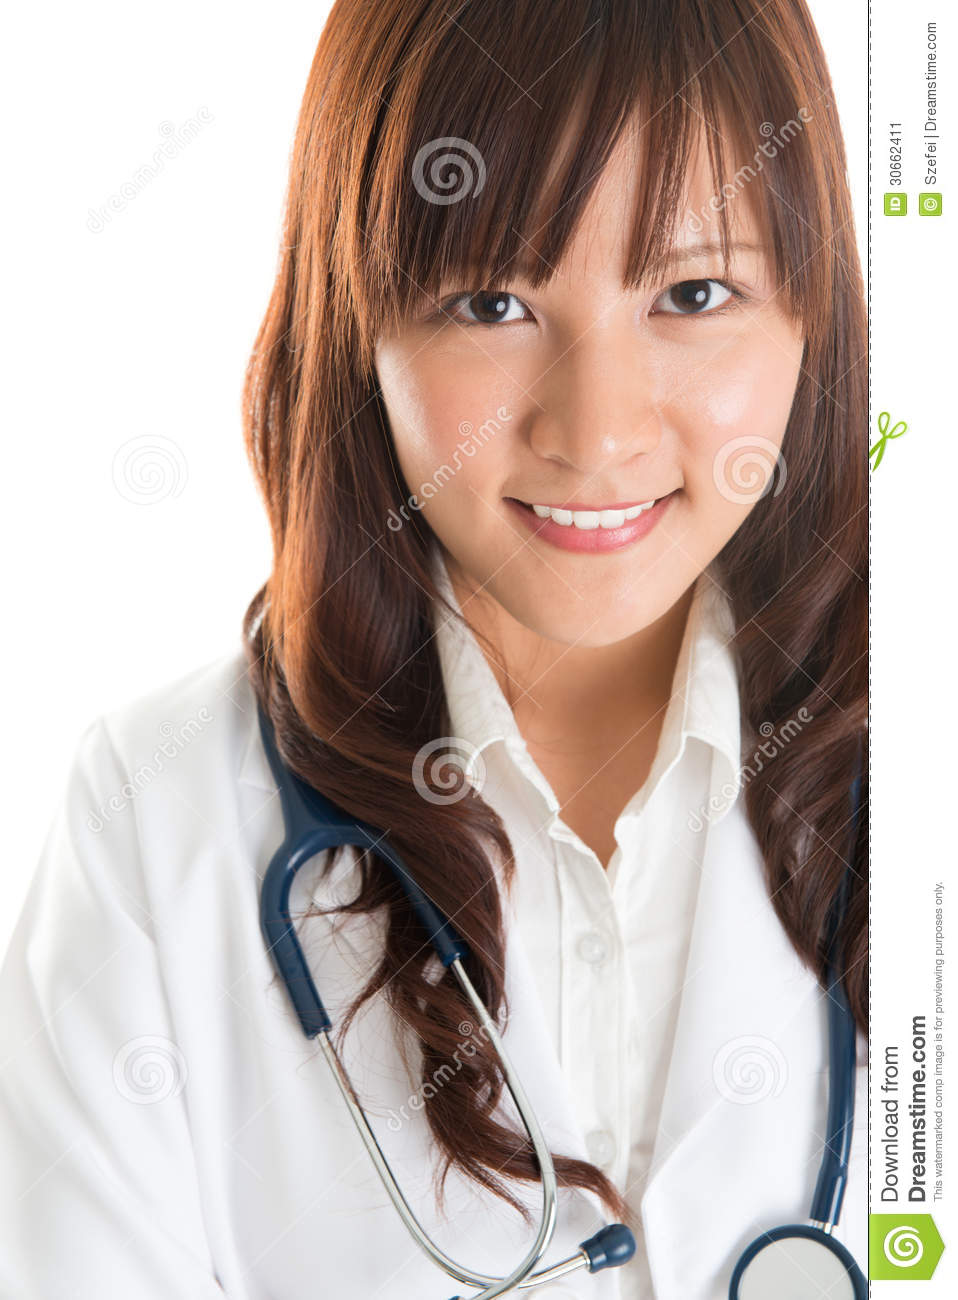 image Destination asia medical student blowjob experience